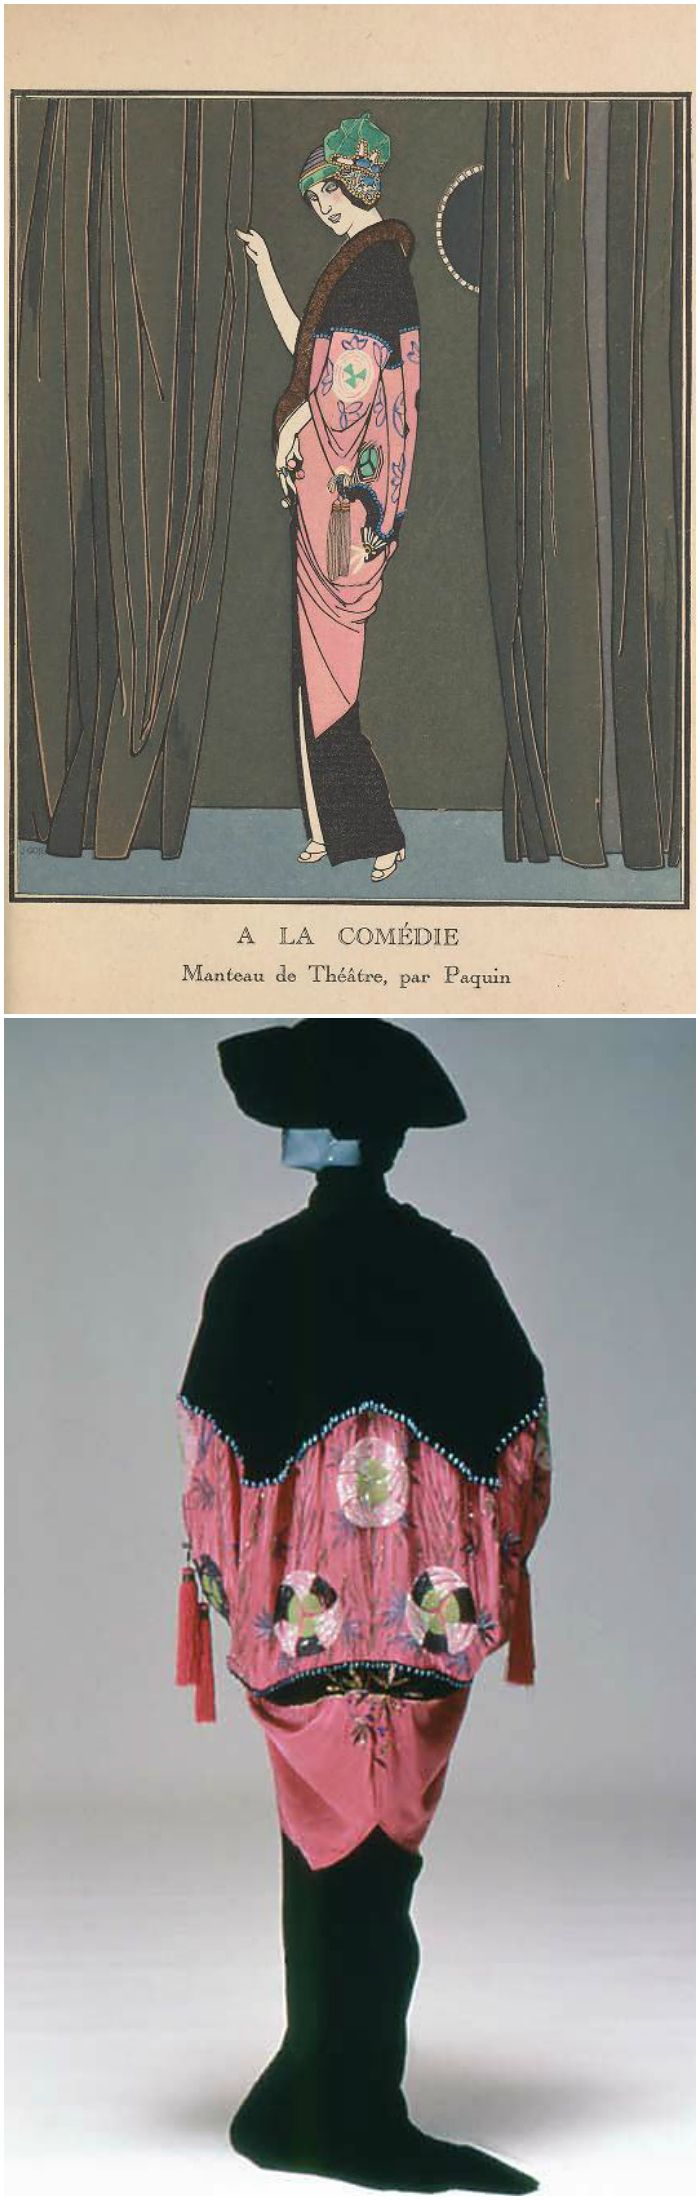 "Opera coat by Jeanne Paquin, 1912, at the Metropolitan Museum of Art. Illustration from ""Gazette du bon ton: arts, modes & frivolités,"" 1912-1913, Tome I, courtesy of the Smithsonian Libraries."